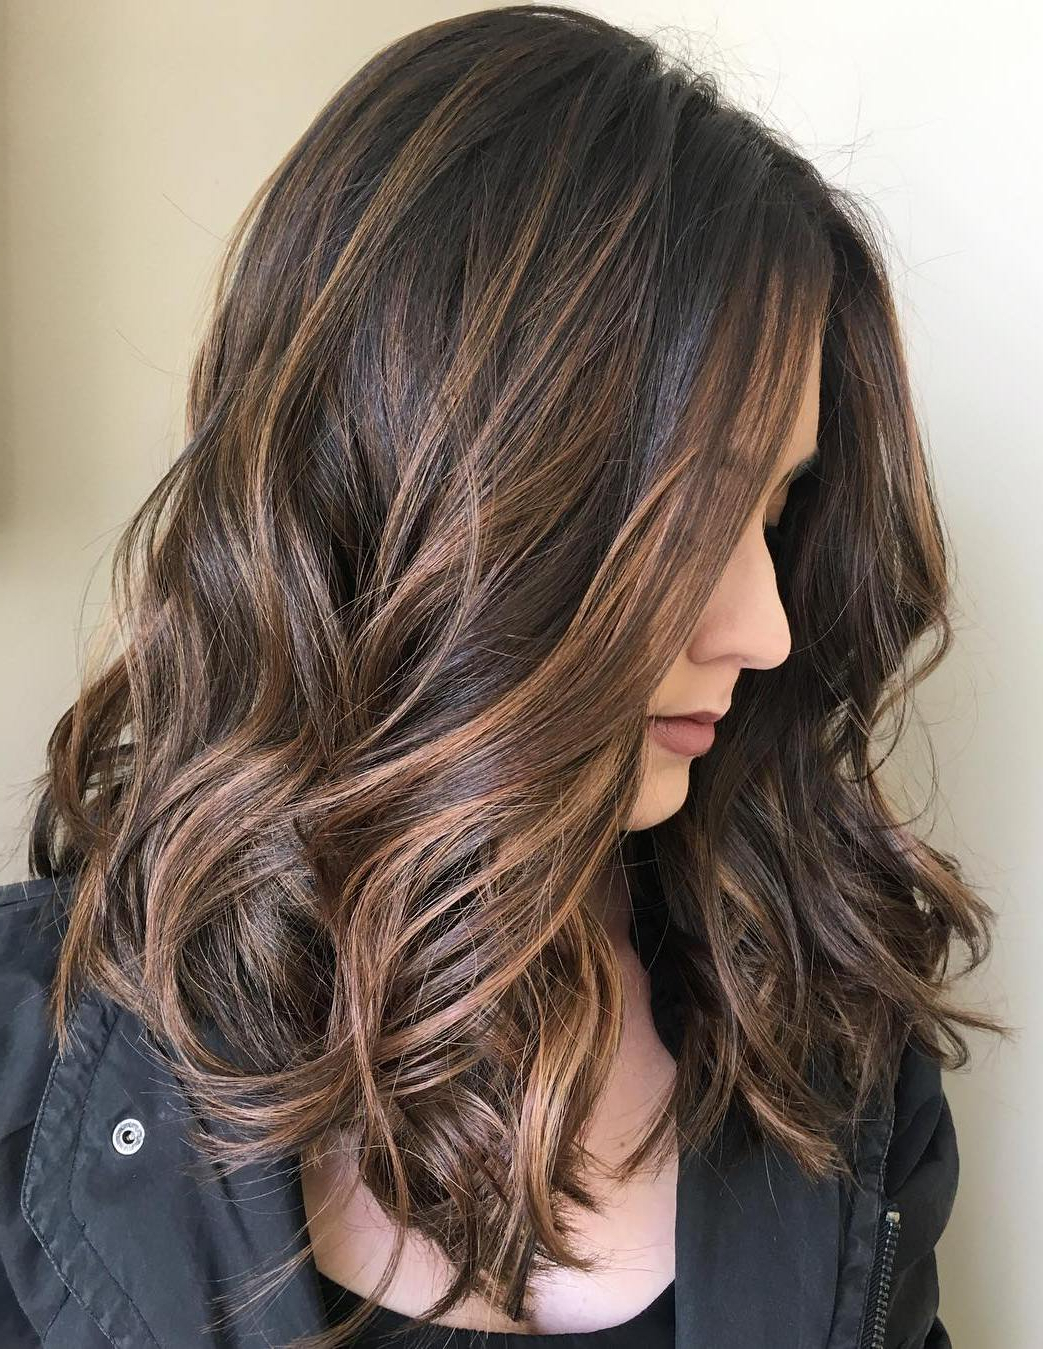 70 Balayage Hair Color Ideas With Blonde, Brown And Caramel Highlights Inside 2018 Long Dark Hairstyles With Blonde Contour Balayage (Gallery 12 of 20)